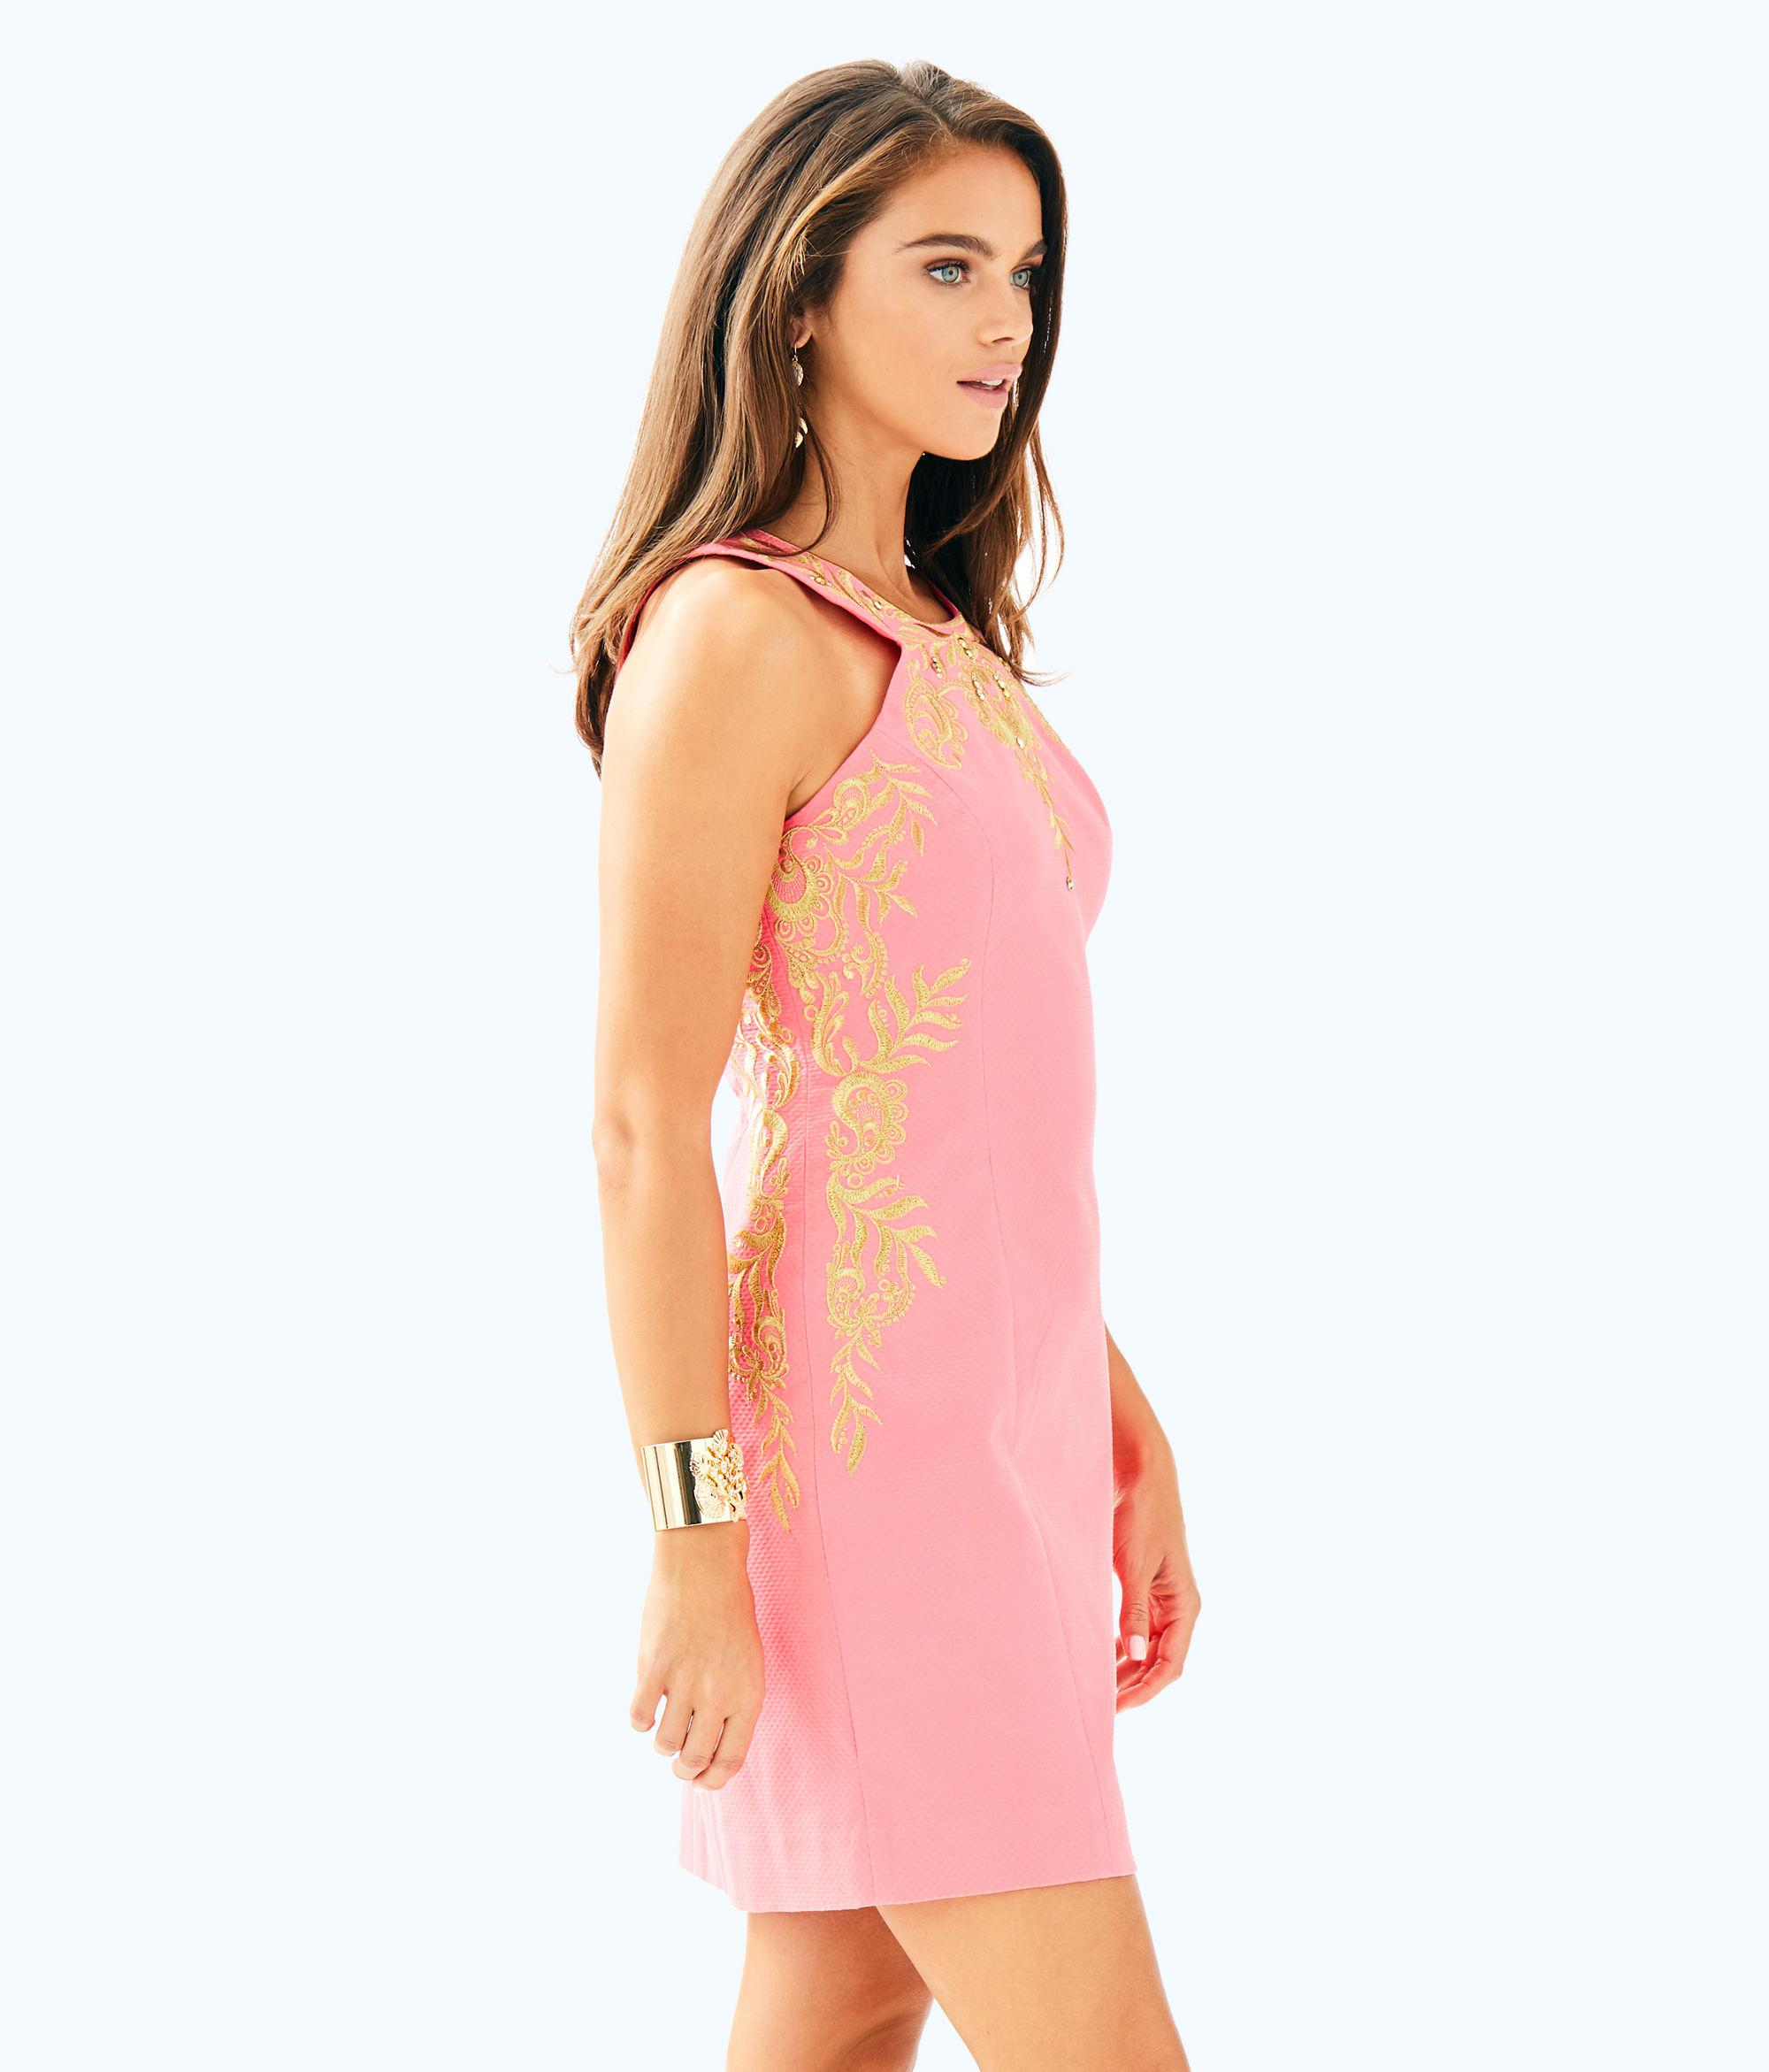 aabb1134d0ac Lyst - Lilly Pulitzer Tina Stretch Shift Dress in Pink